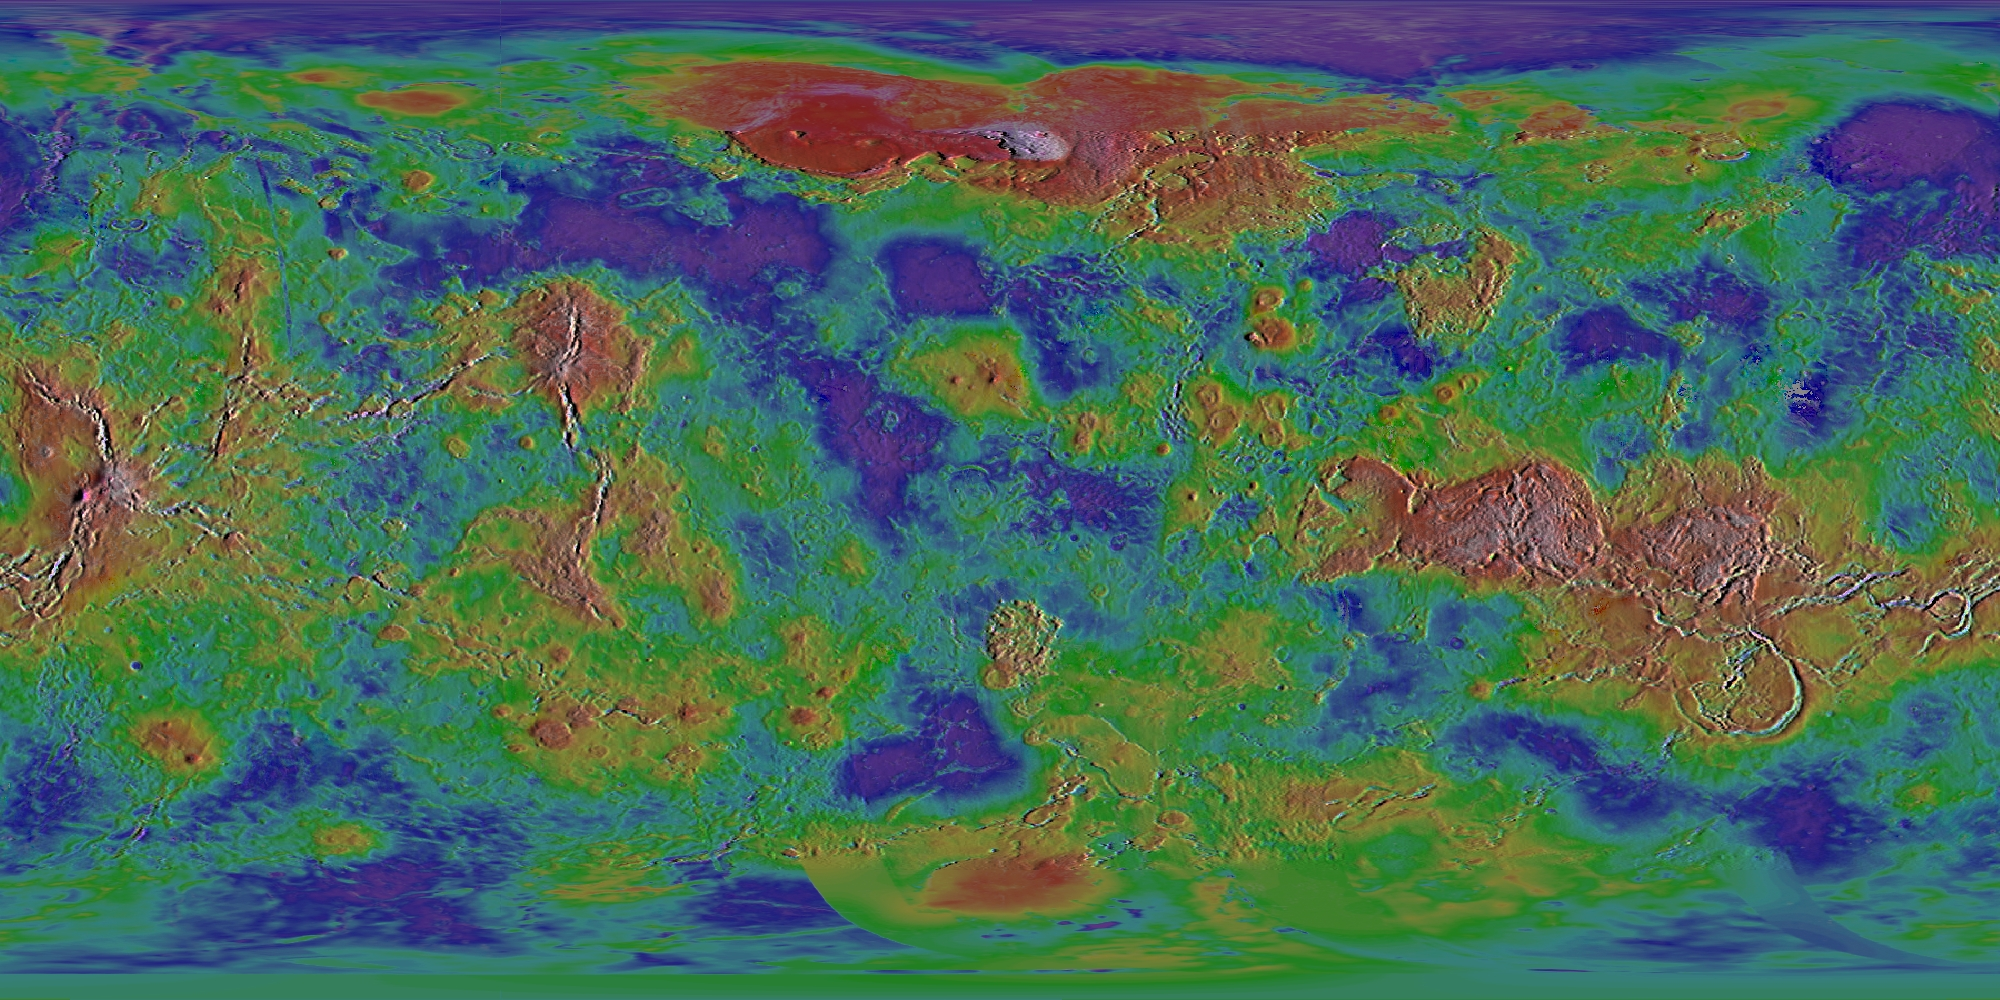 Steve Albers' Planetary Maps (Global Images) on